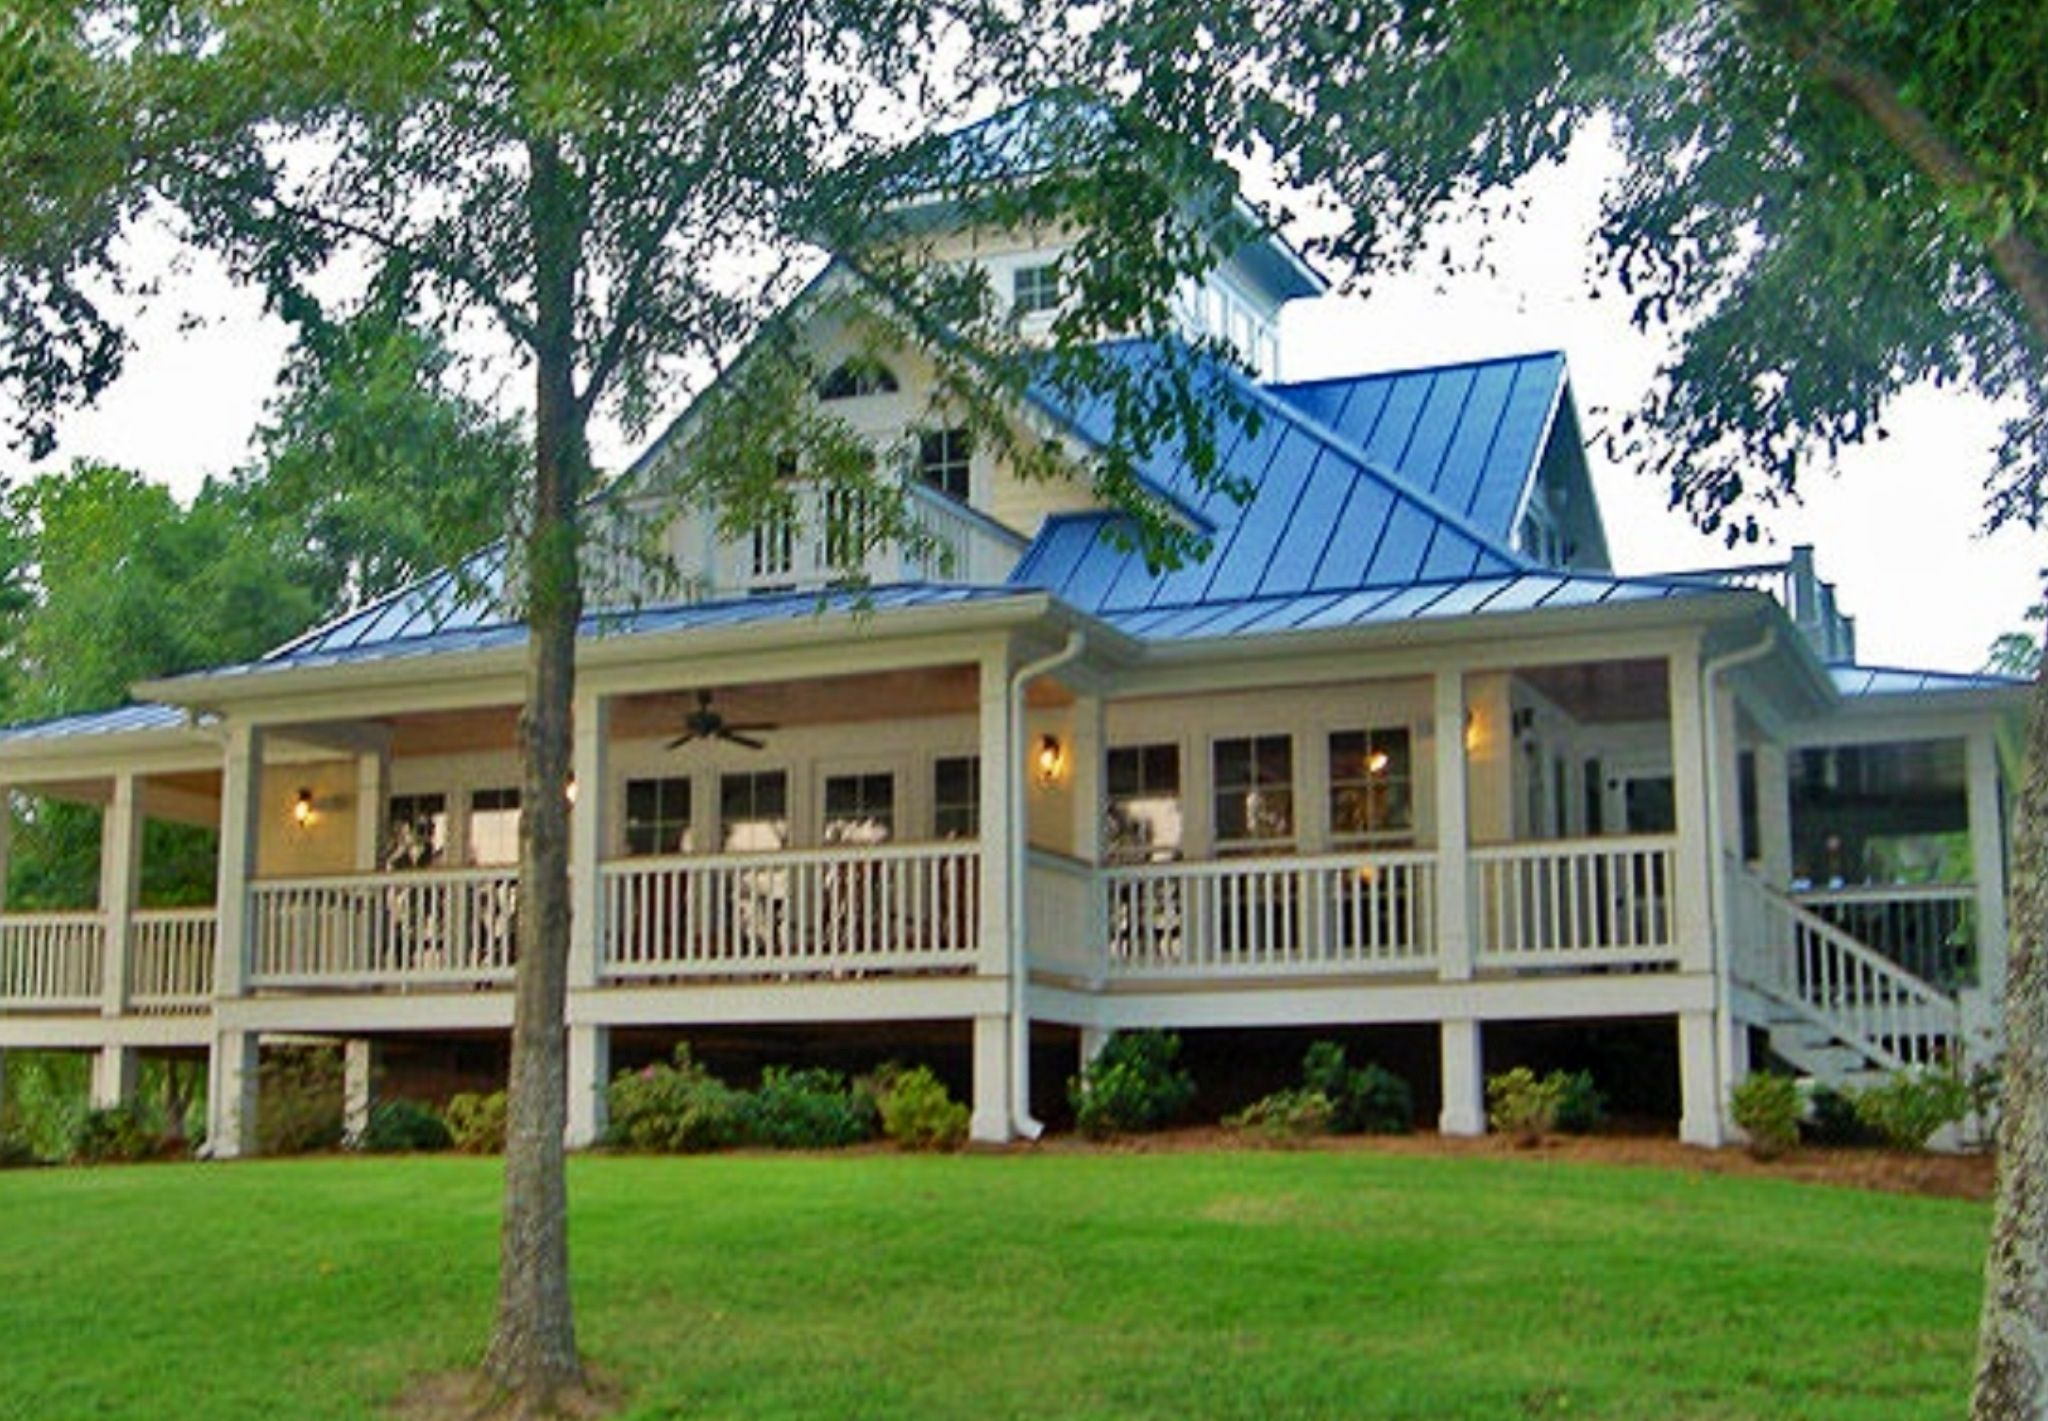 Houses with wrap around porches - 3 Bedroom Open Floor Plan With Wraparound Porch And Basement Basements Porch And Wraps